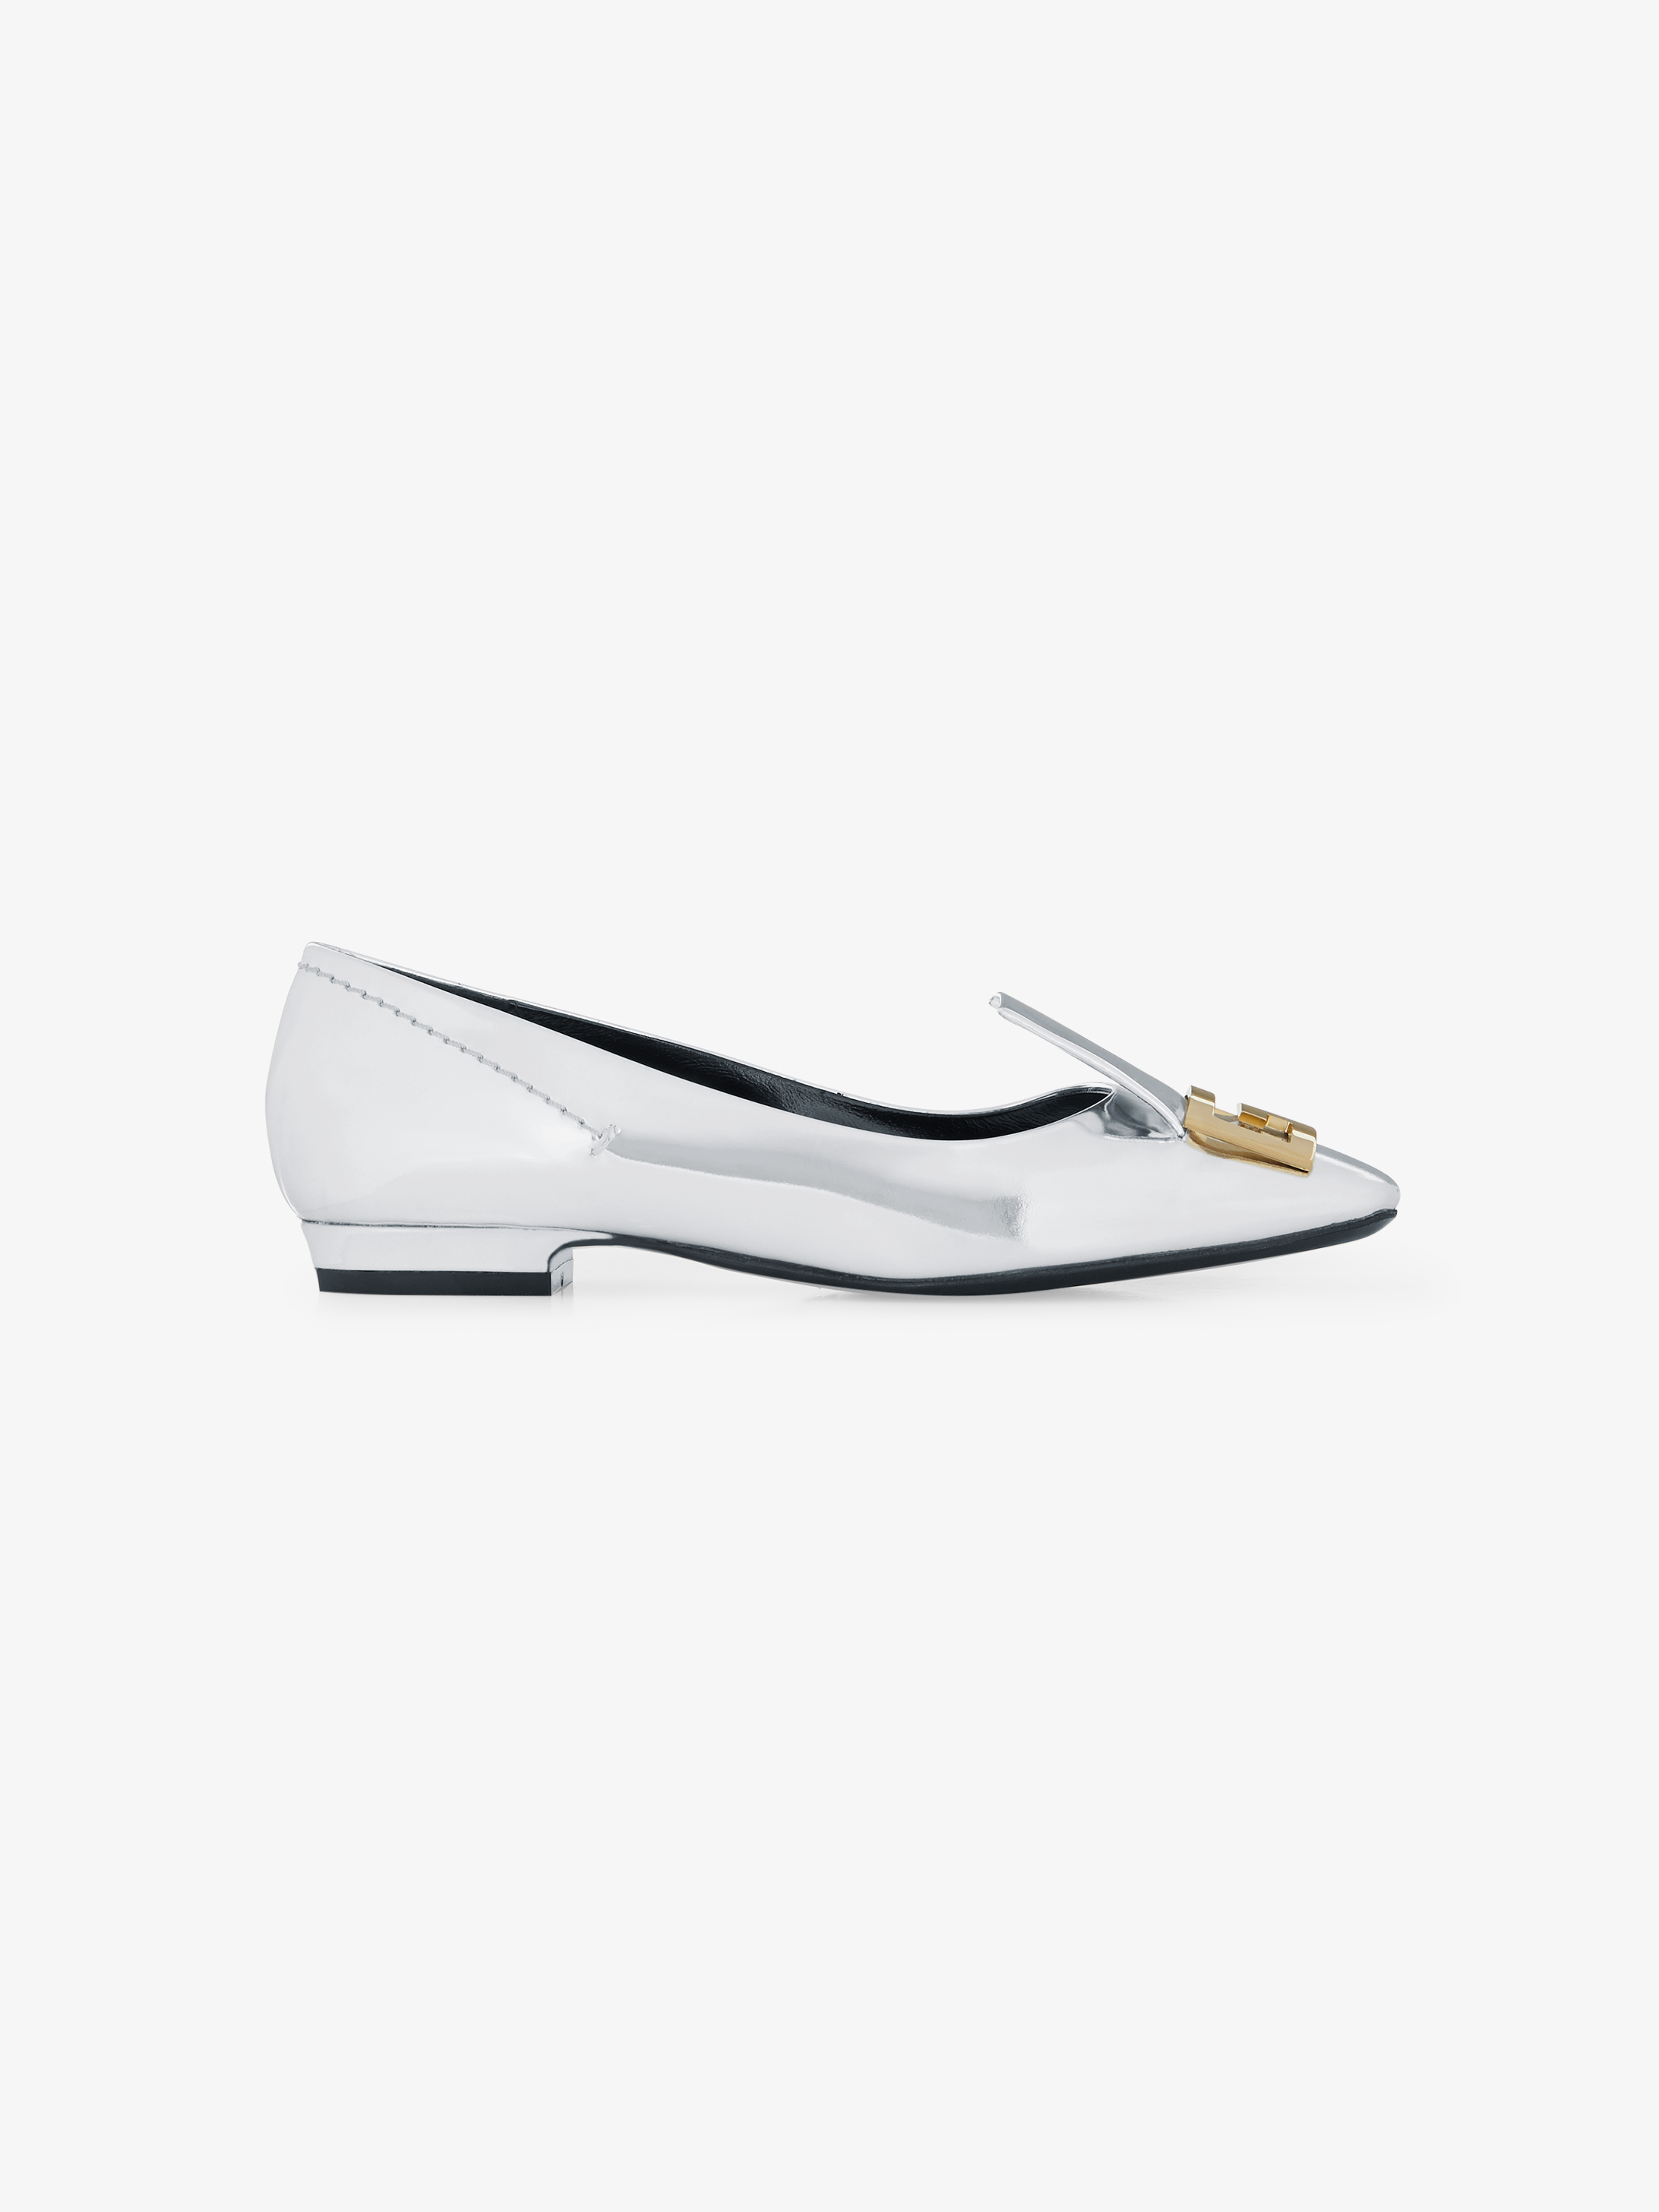 Double G Mystic loafers in mirror effect leather